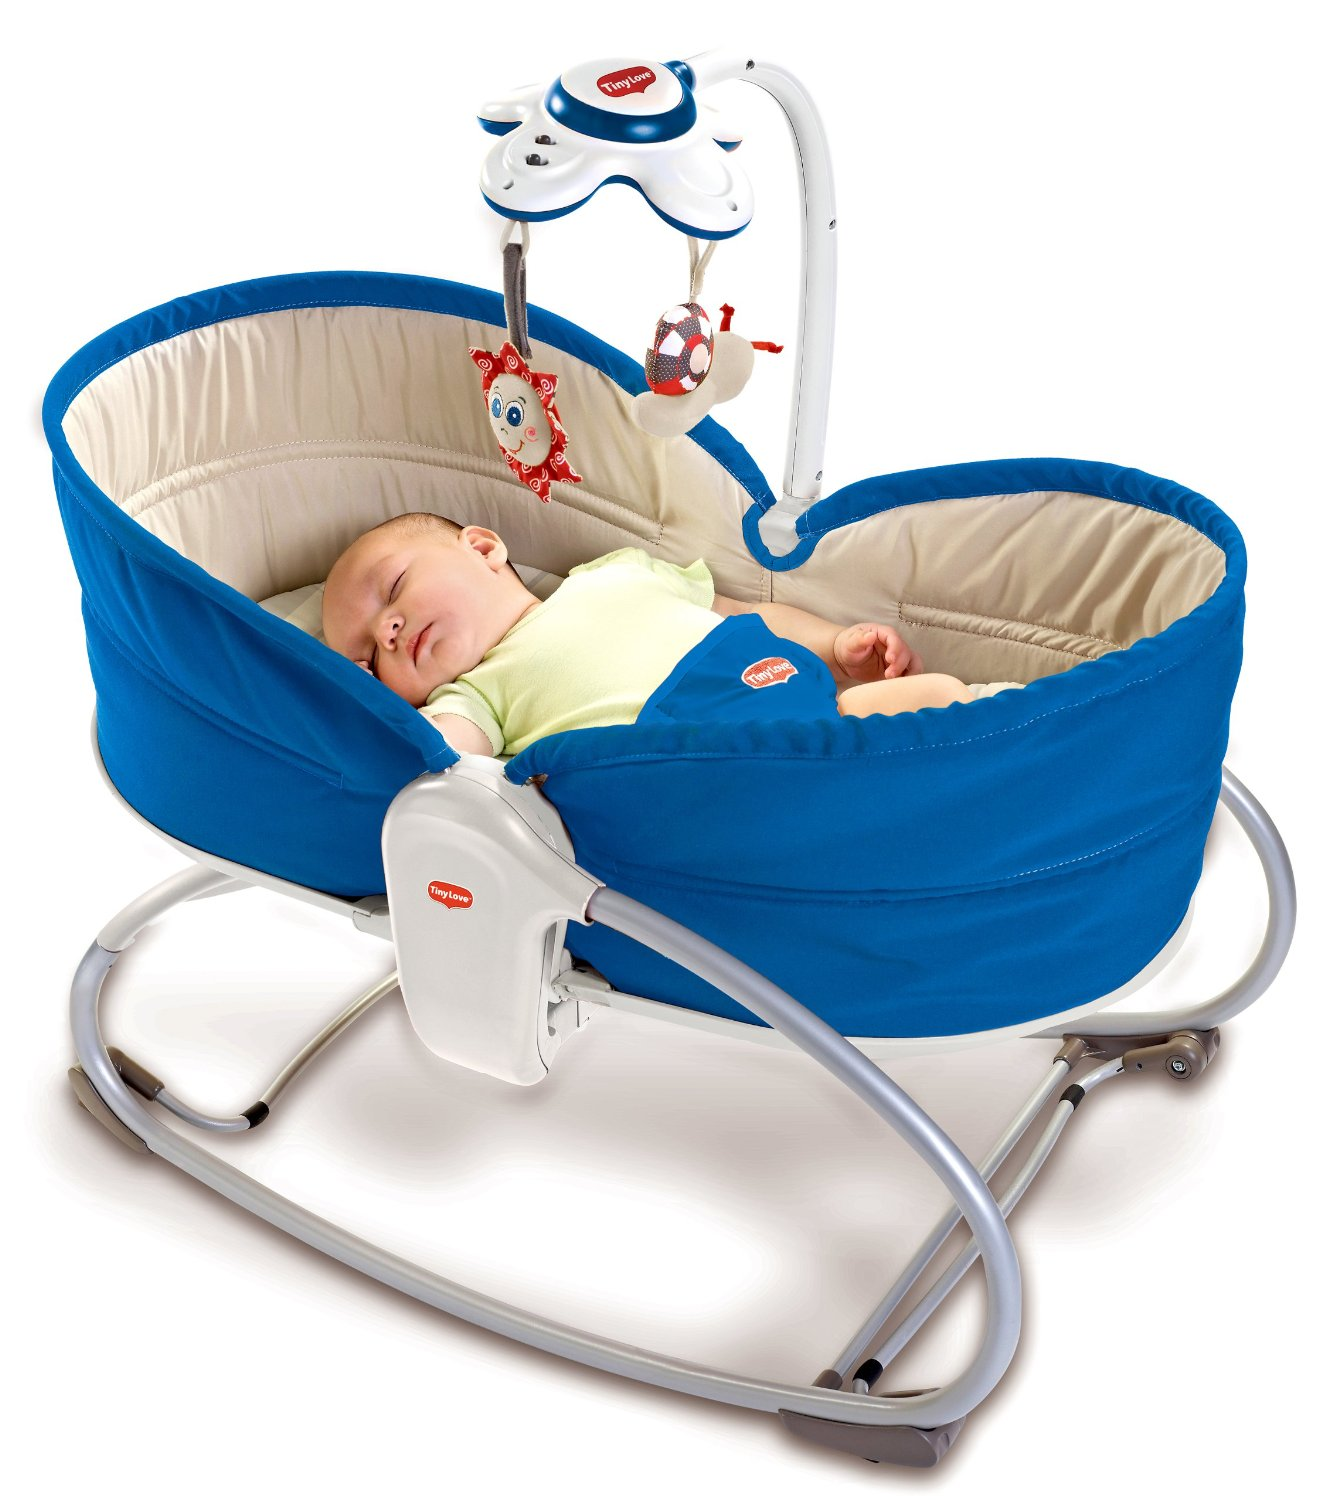 3 in 1 Rocker Napper Blue